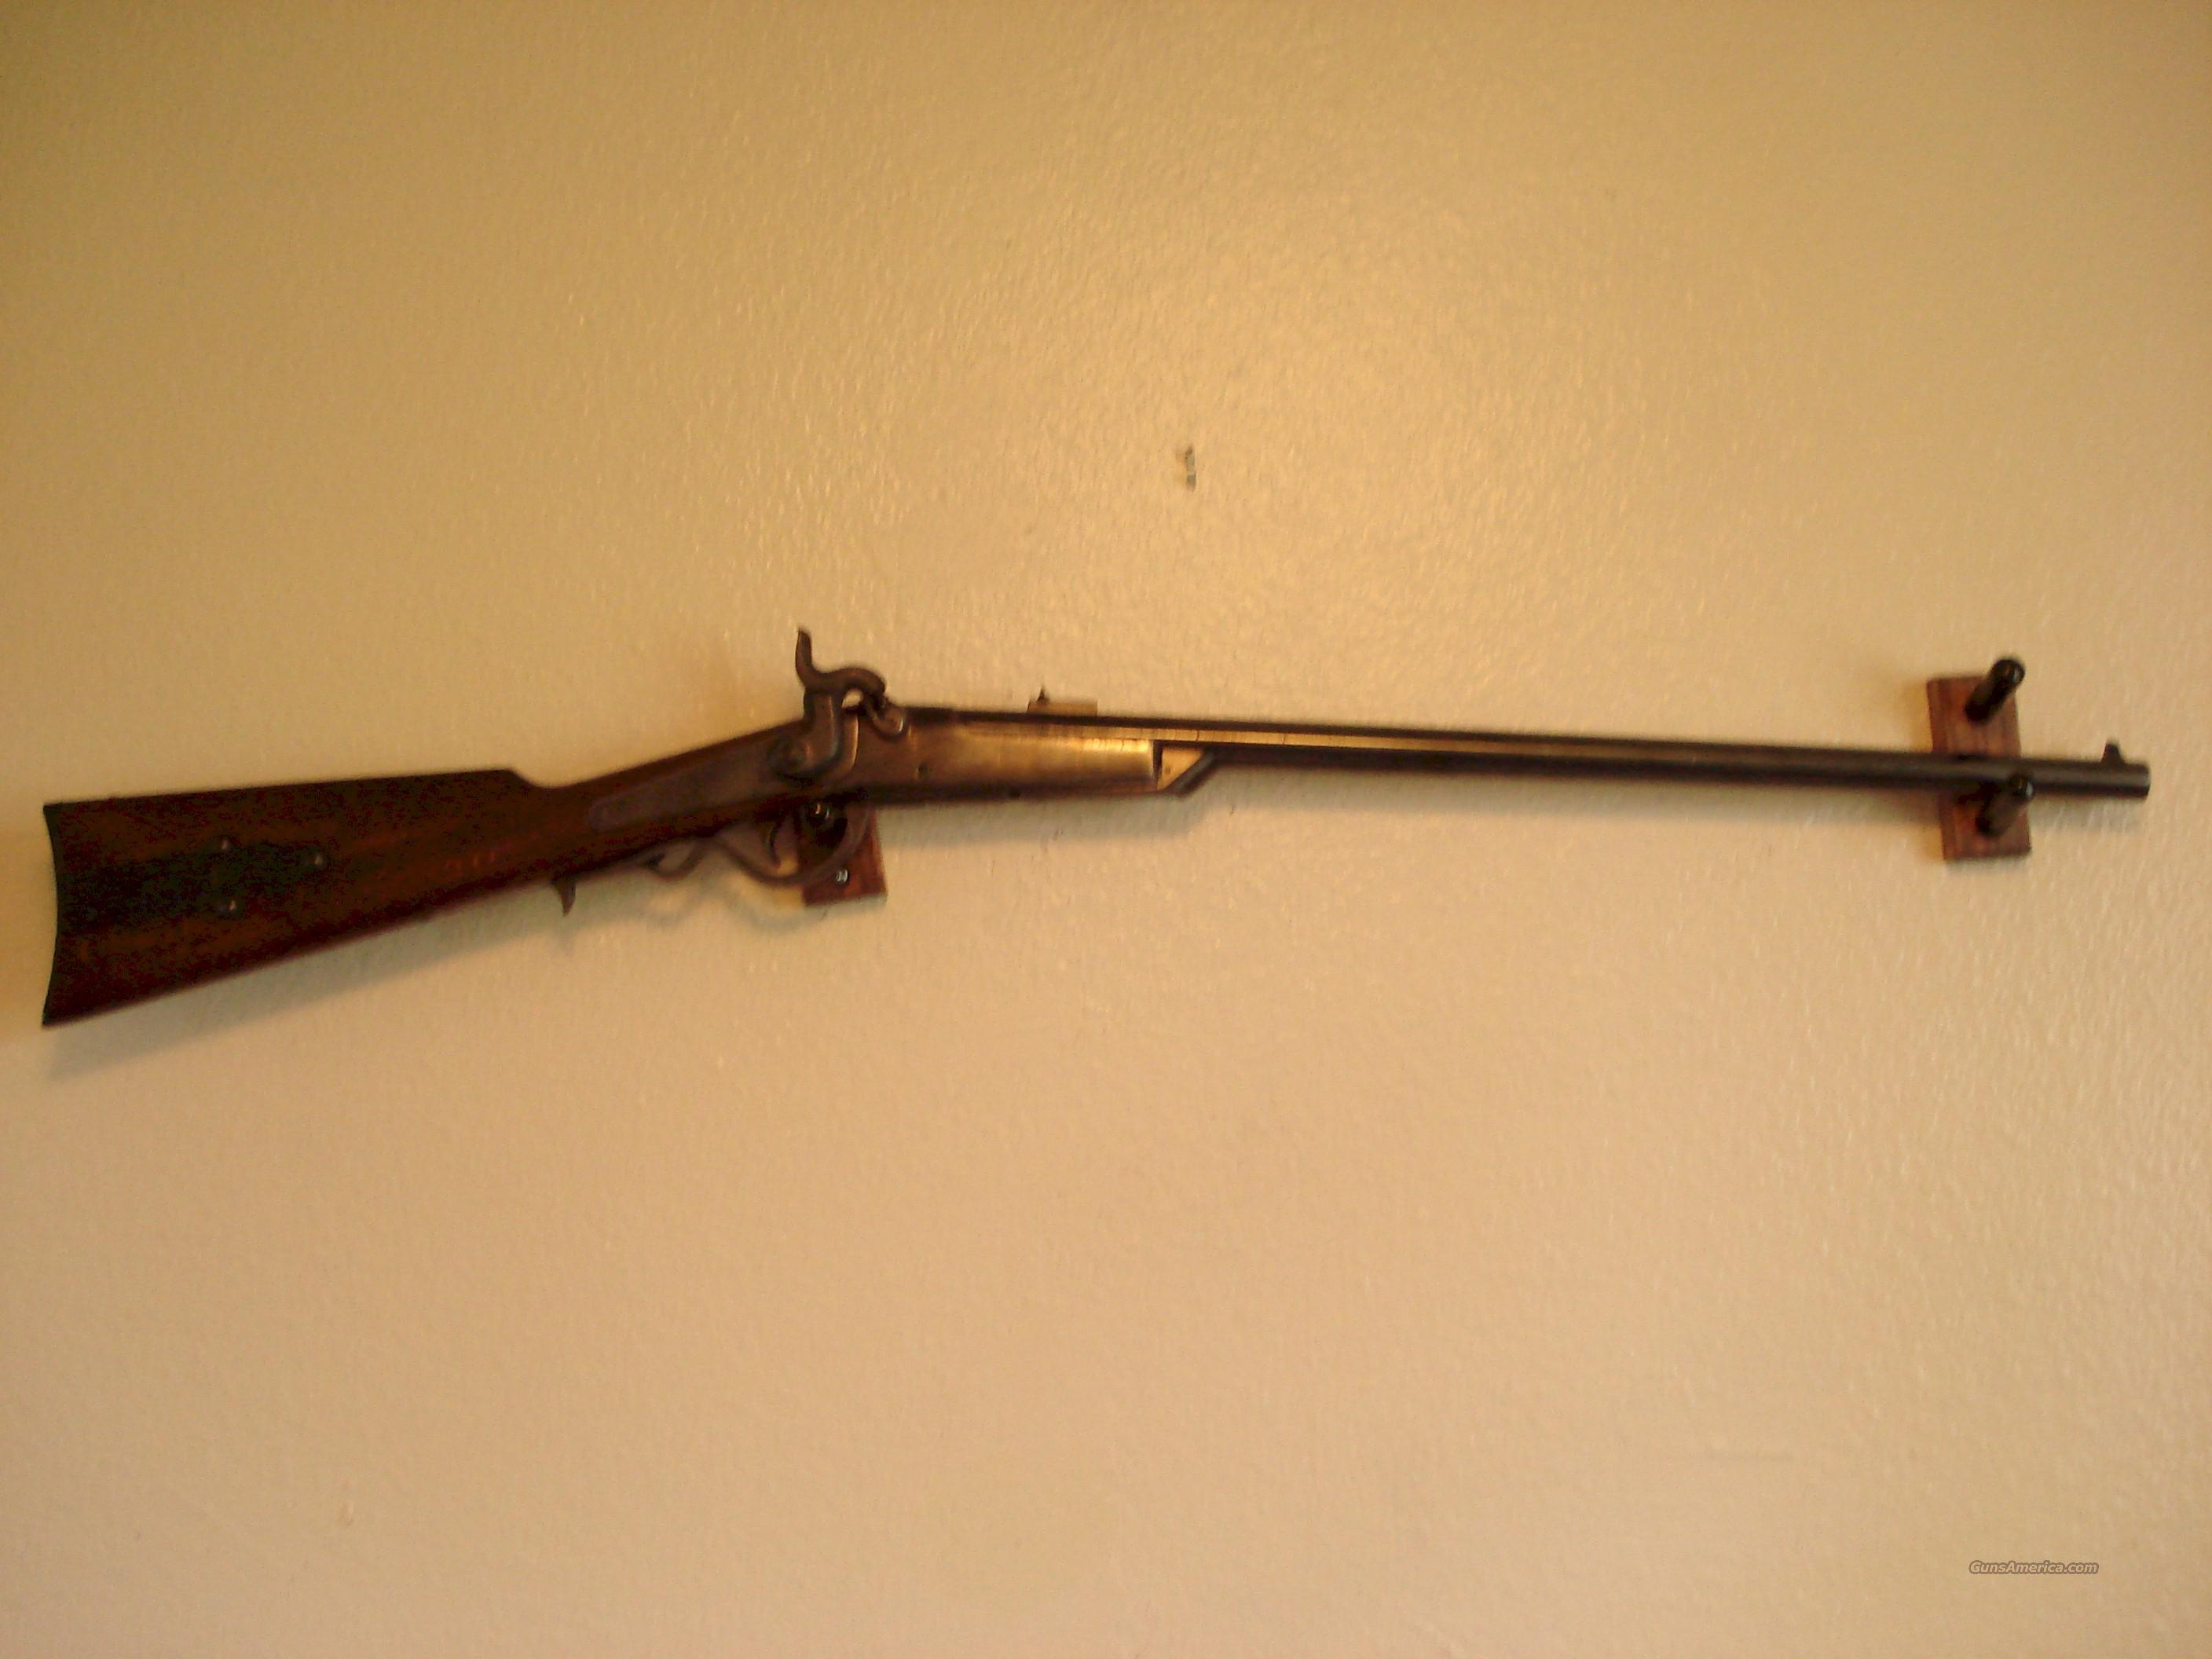 1860 Gallagher by ERMA WERKS  Guns > Rifles > Muzzleloading Modern & Replica Rifles (perc) > Replica Muzzleloaders